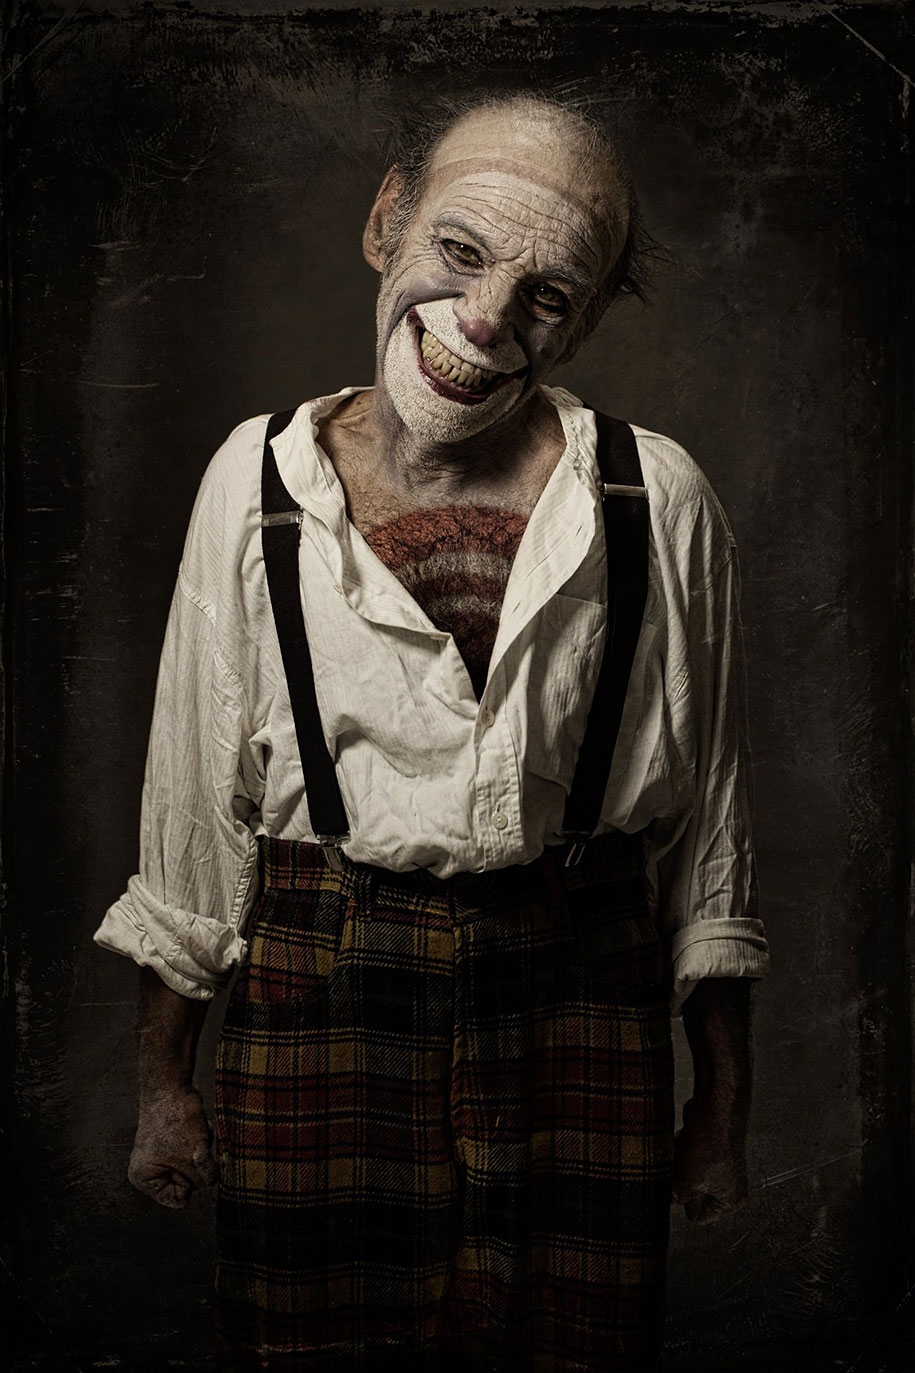 macabre-scary-clown-portraits-clownville-eolo-perfido-11